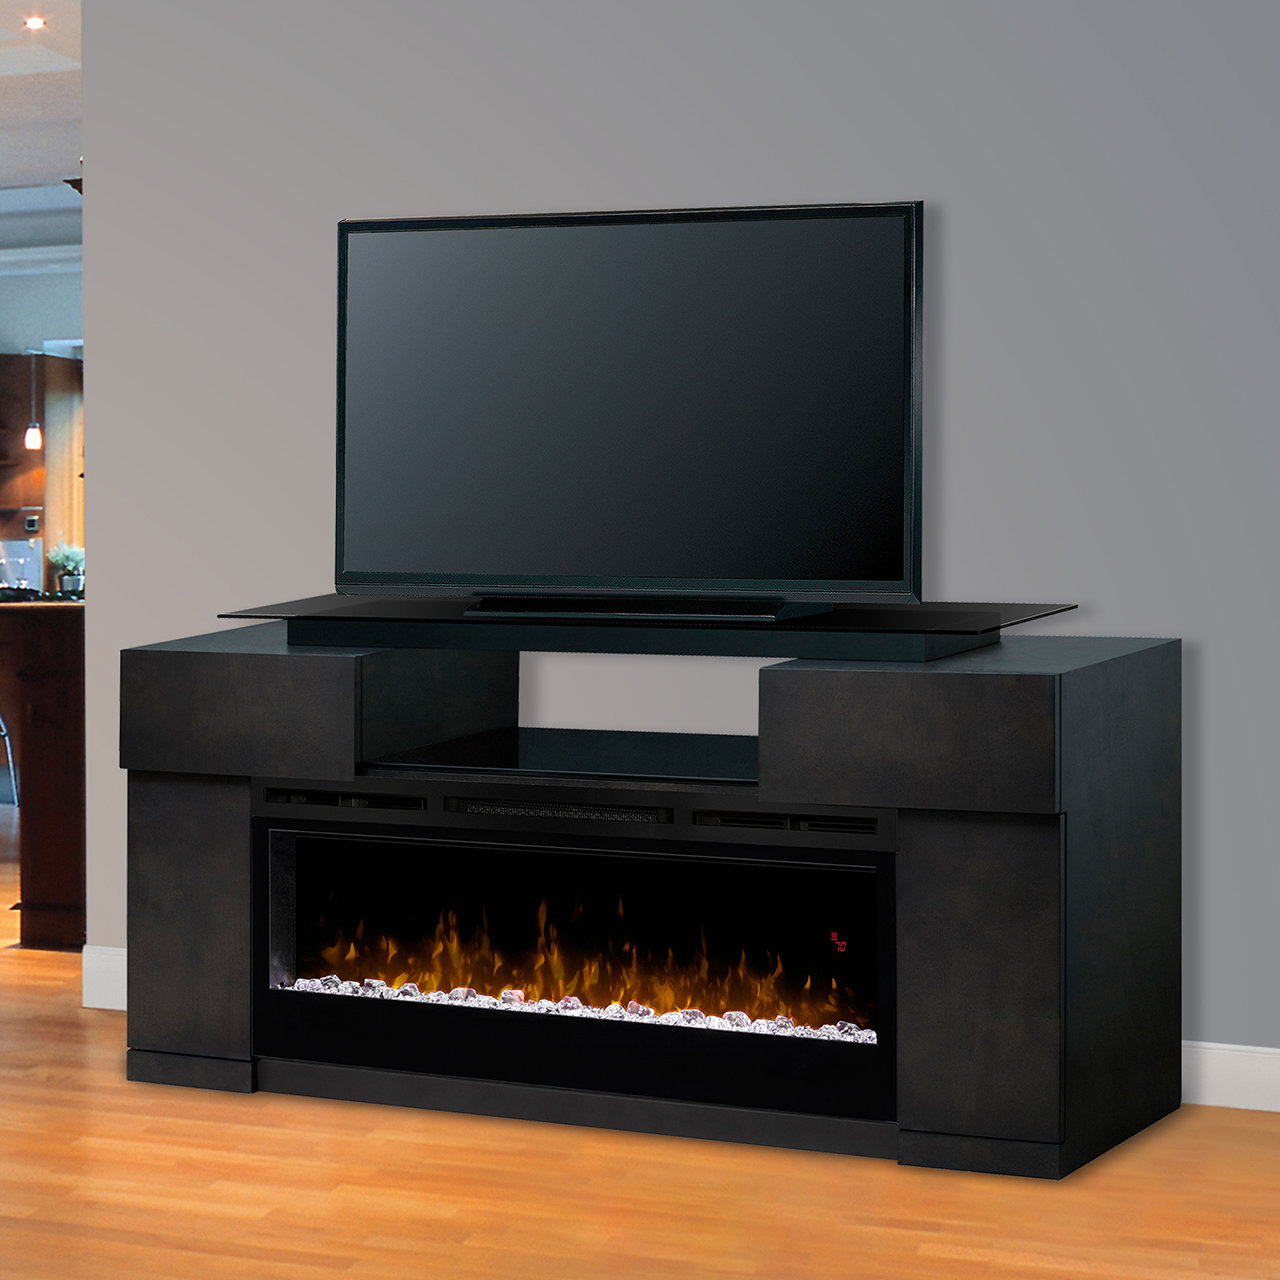 TV stand fireplace in living room Saskatoon and Regina